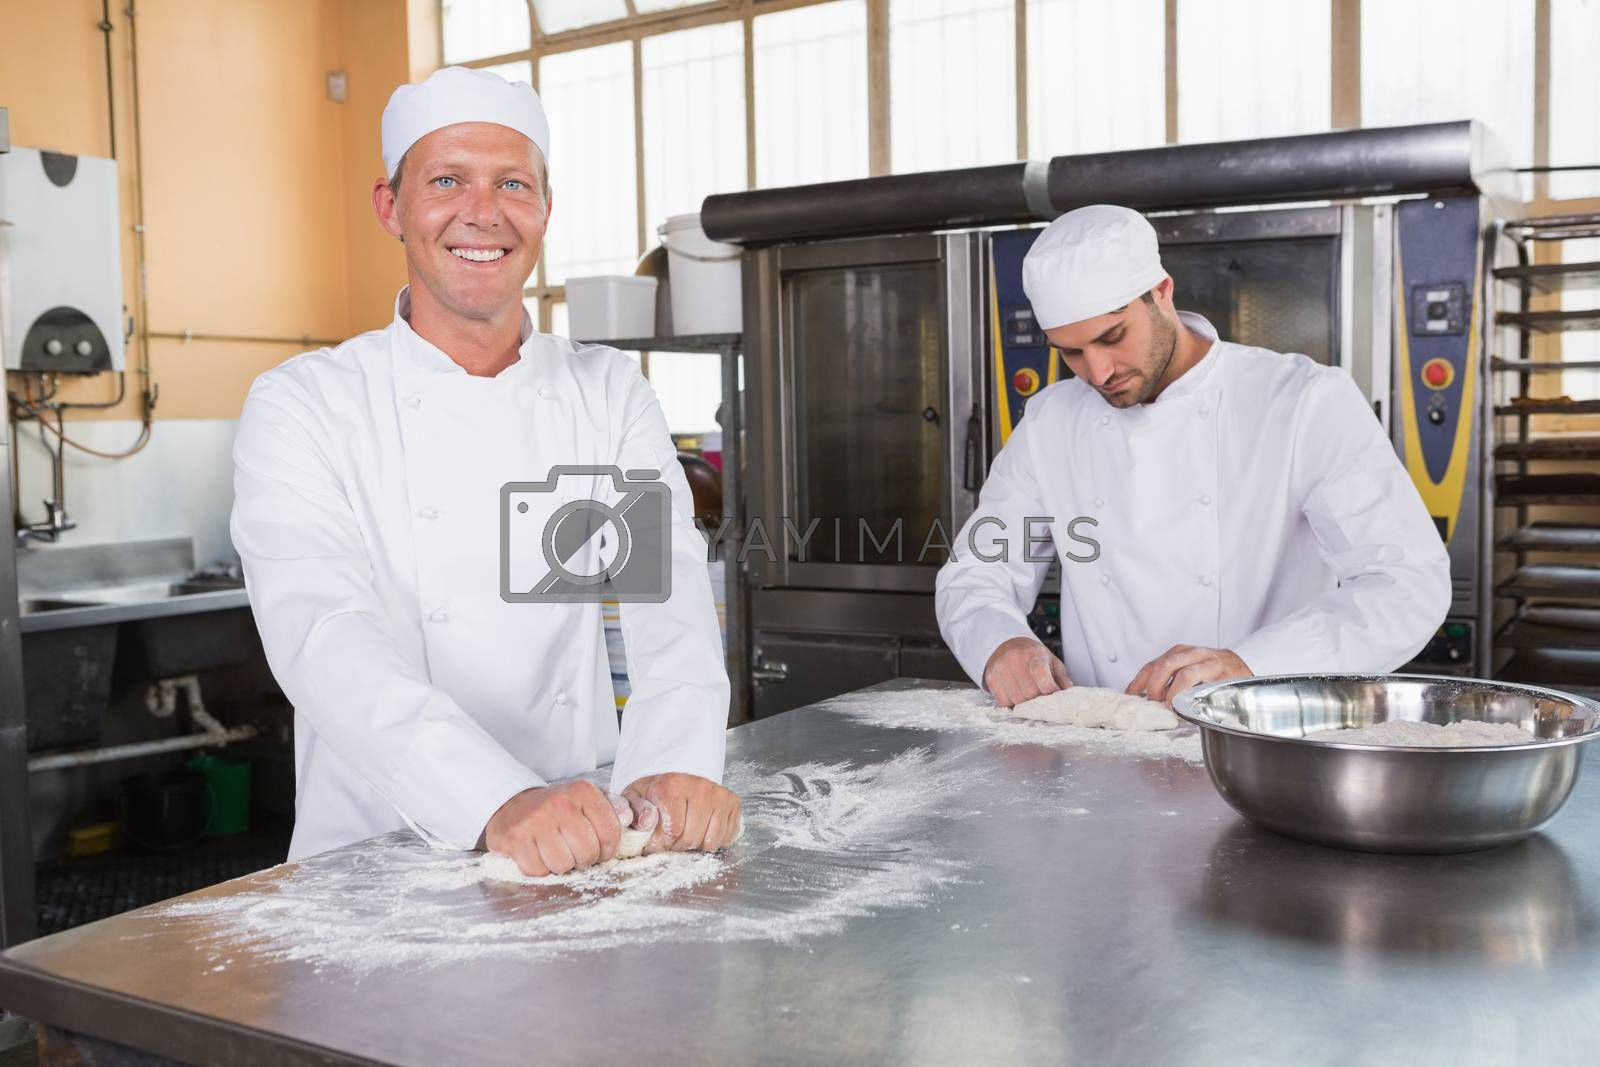 Team of bakers working together in commercial kitchen